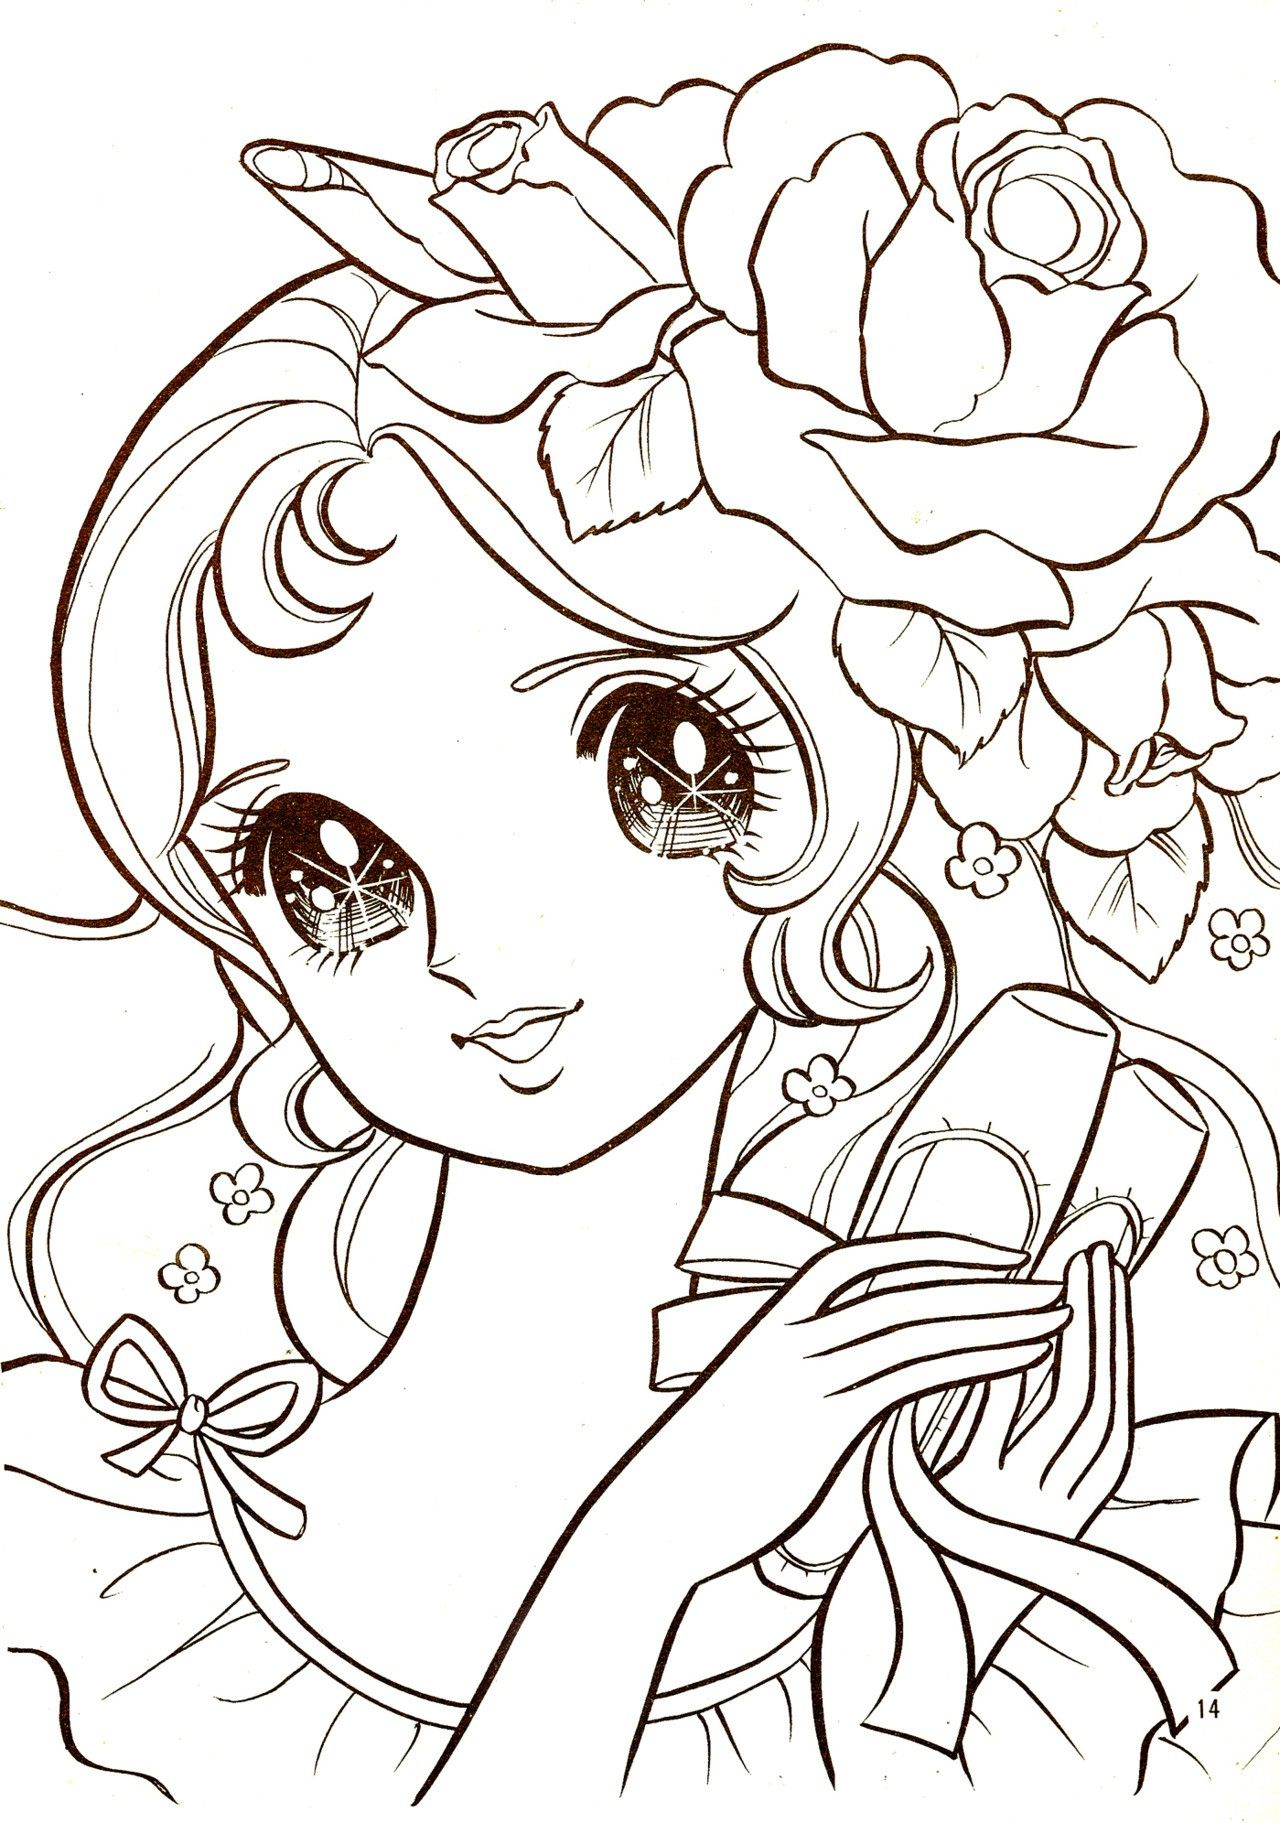 Manga Princess Coloring Pages From The Thousands Of Pictures On Line Concerning Manga Princess Coloring Pages Coloring Pages Coloring Books Colorful Drawings